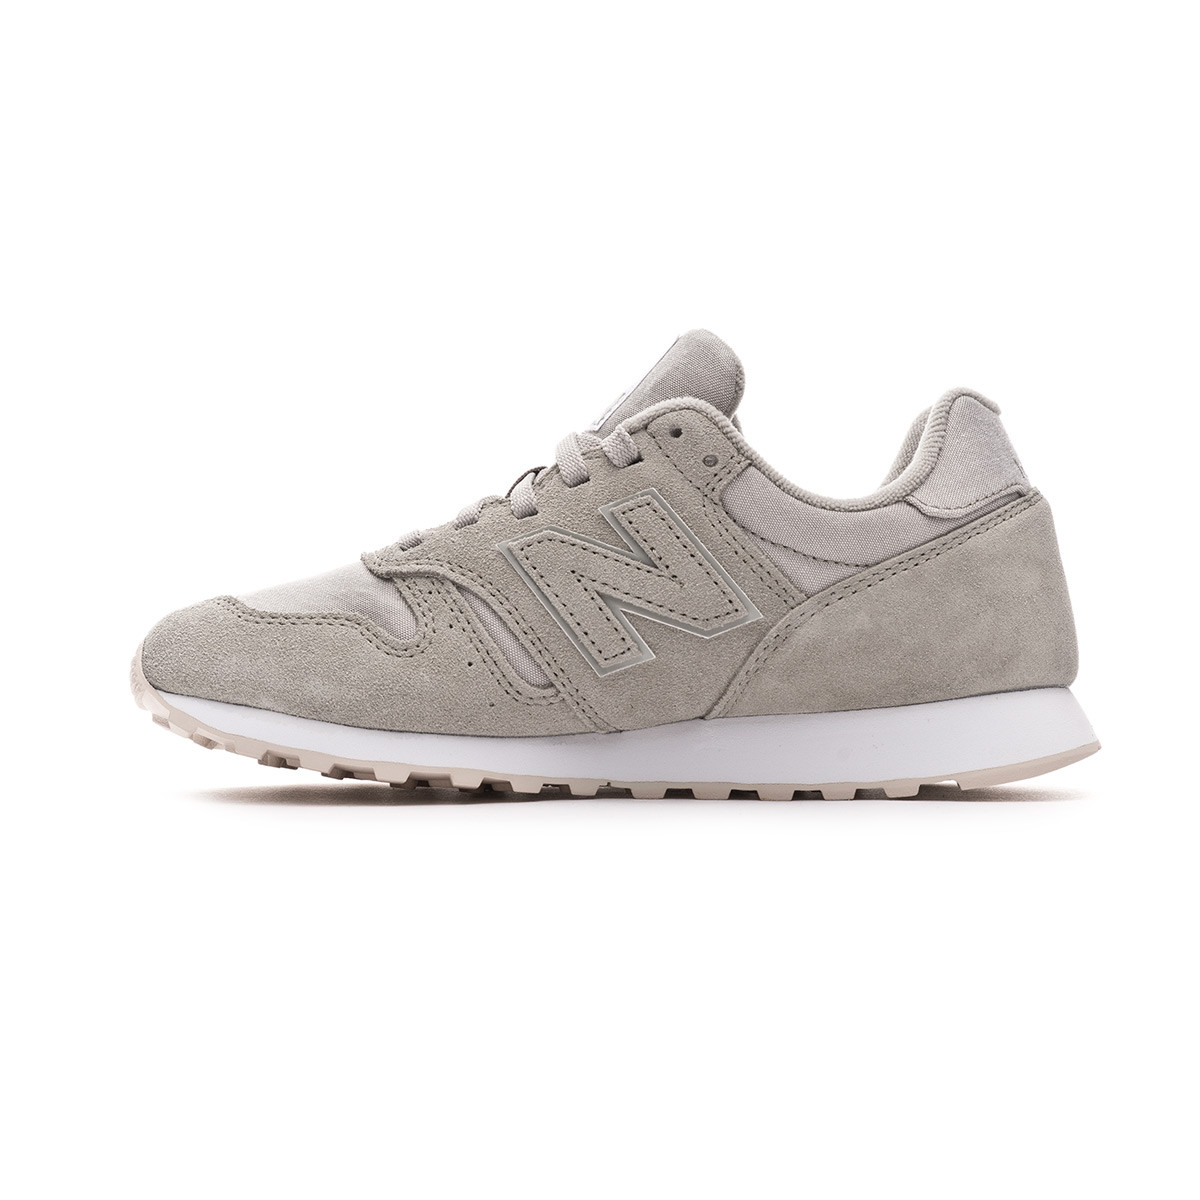 4da1f9e1b93 Trainers New Balance 373 Mujer Stone grey - Football store Fútbol Emotion